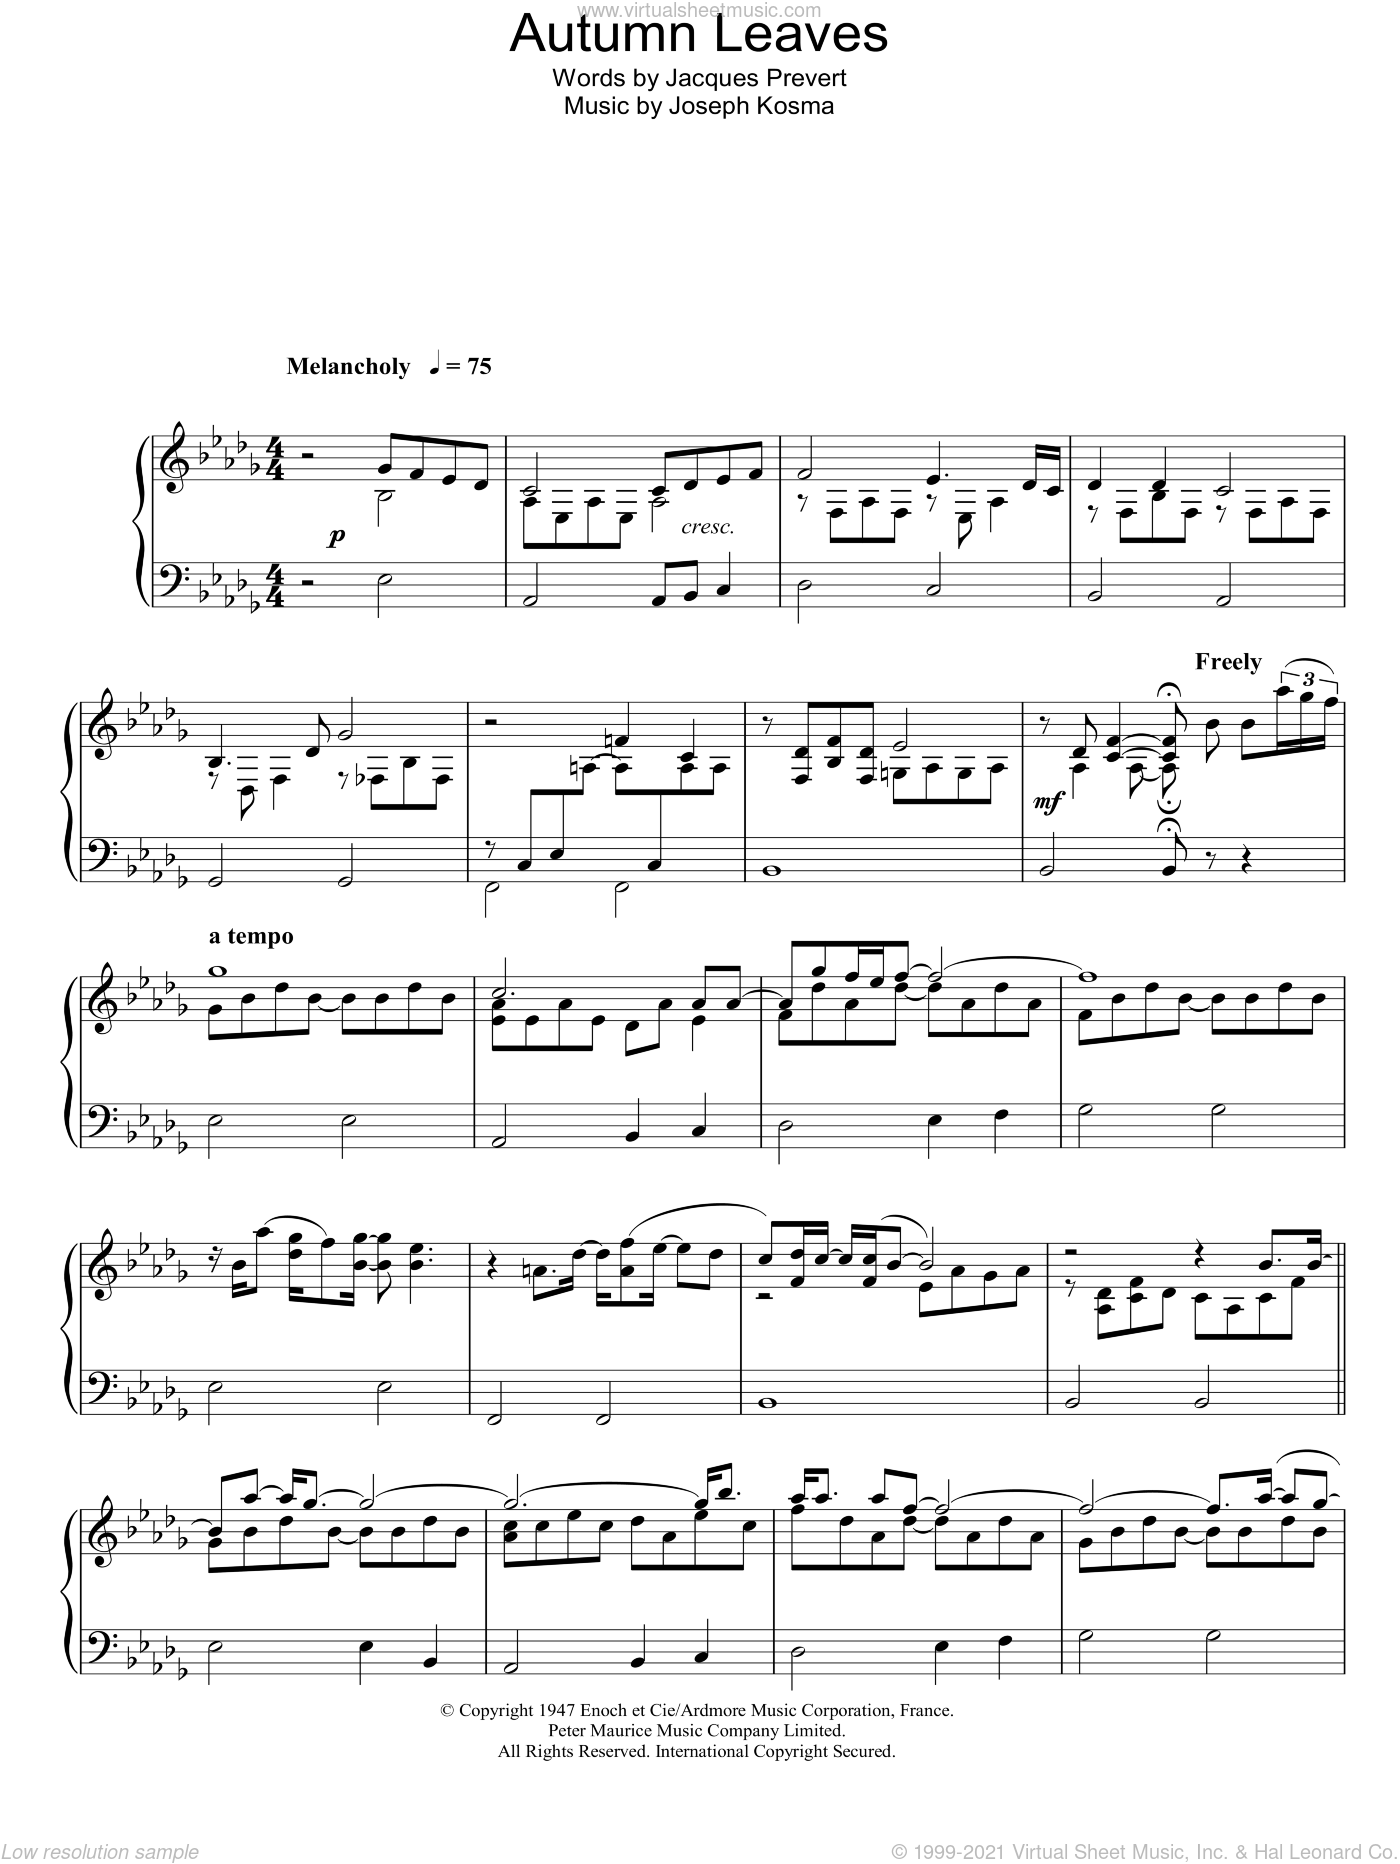 Cassidy - Autumn Leaves (Les Feuilles Mortes) sheet music for piano solo